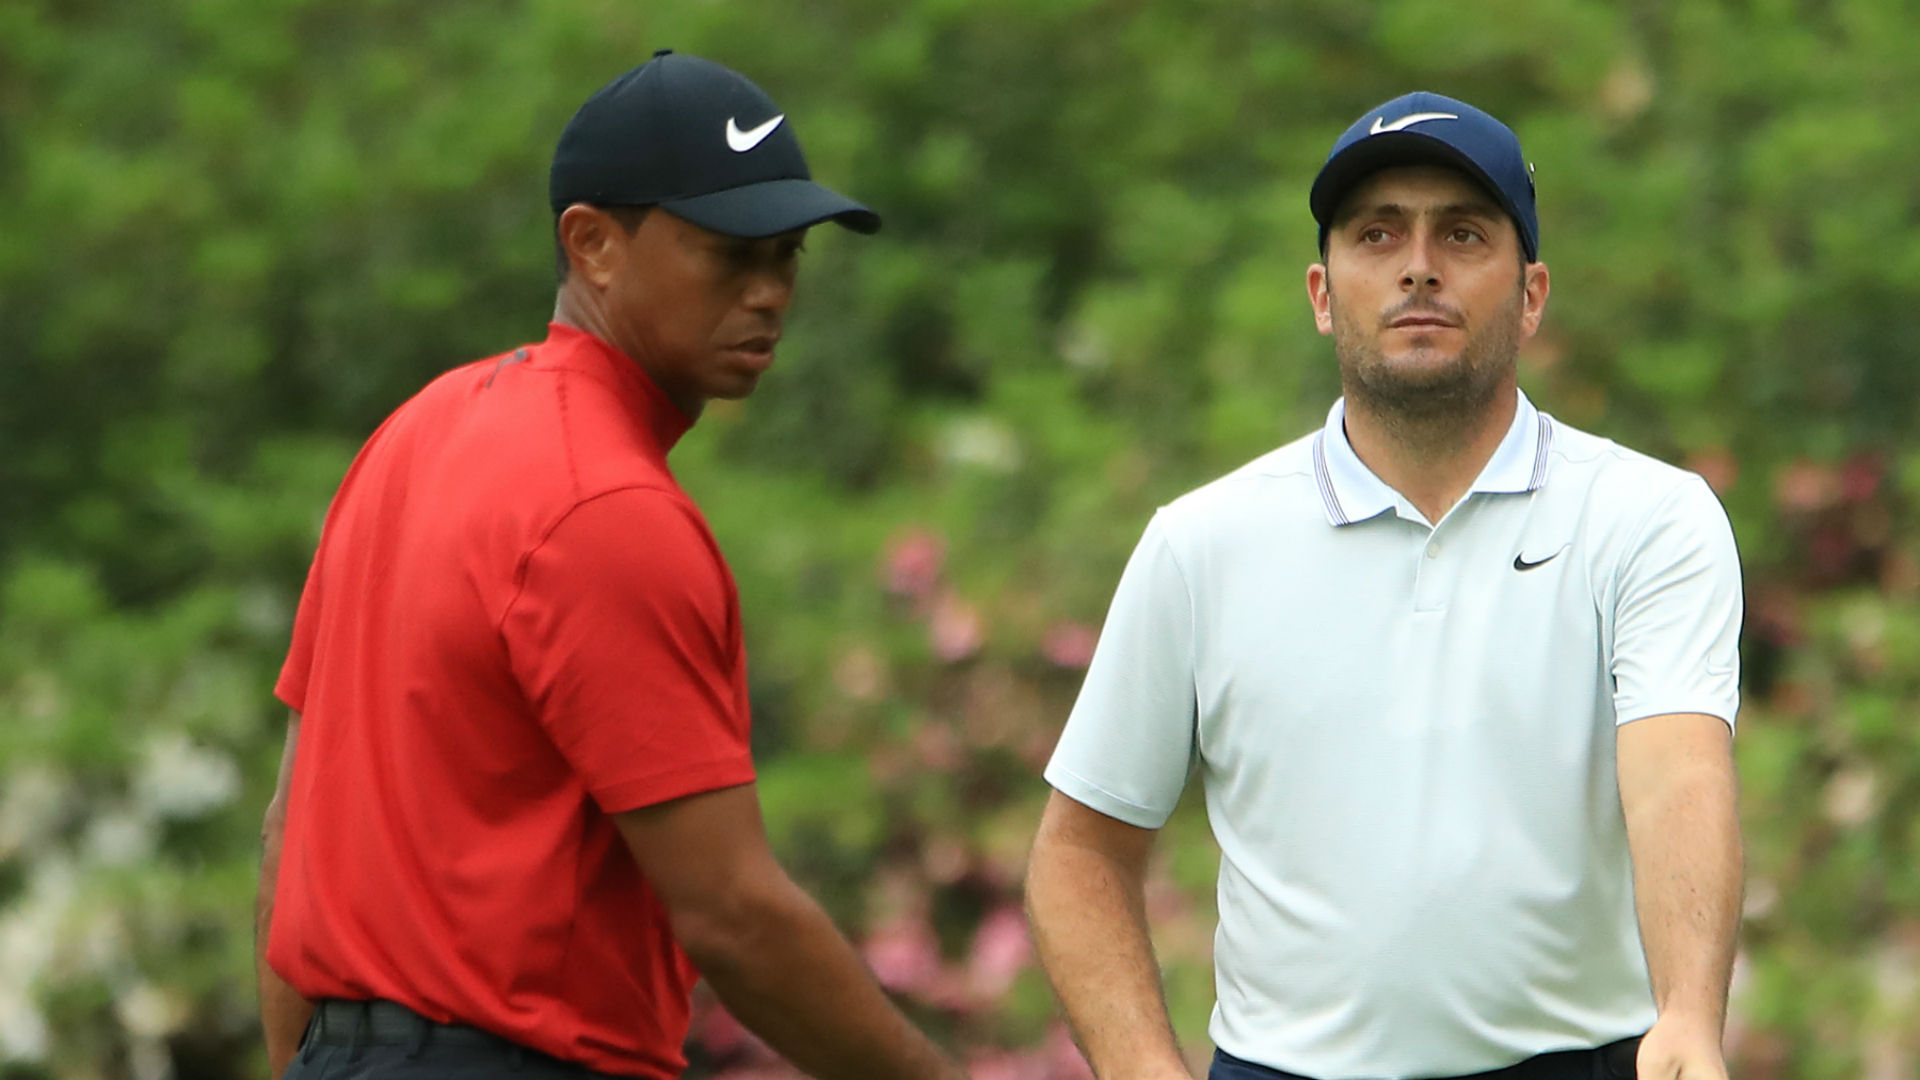 pga championship 2019  tee times out for early rounds